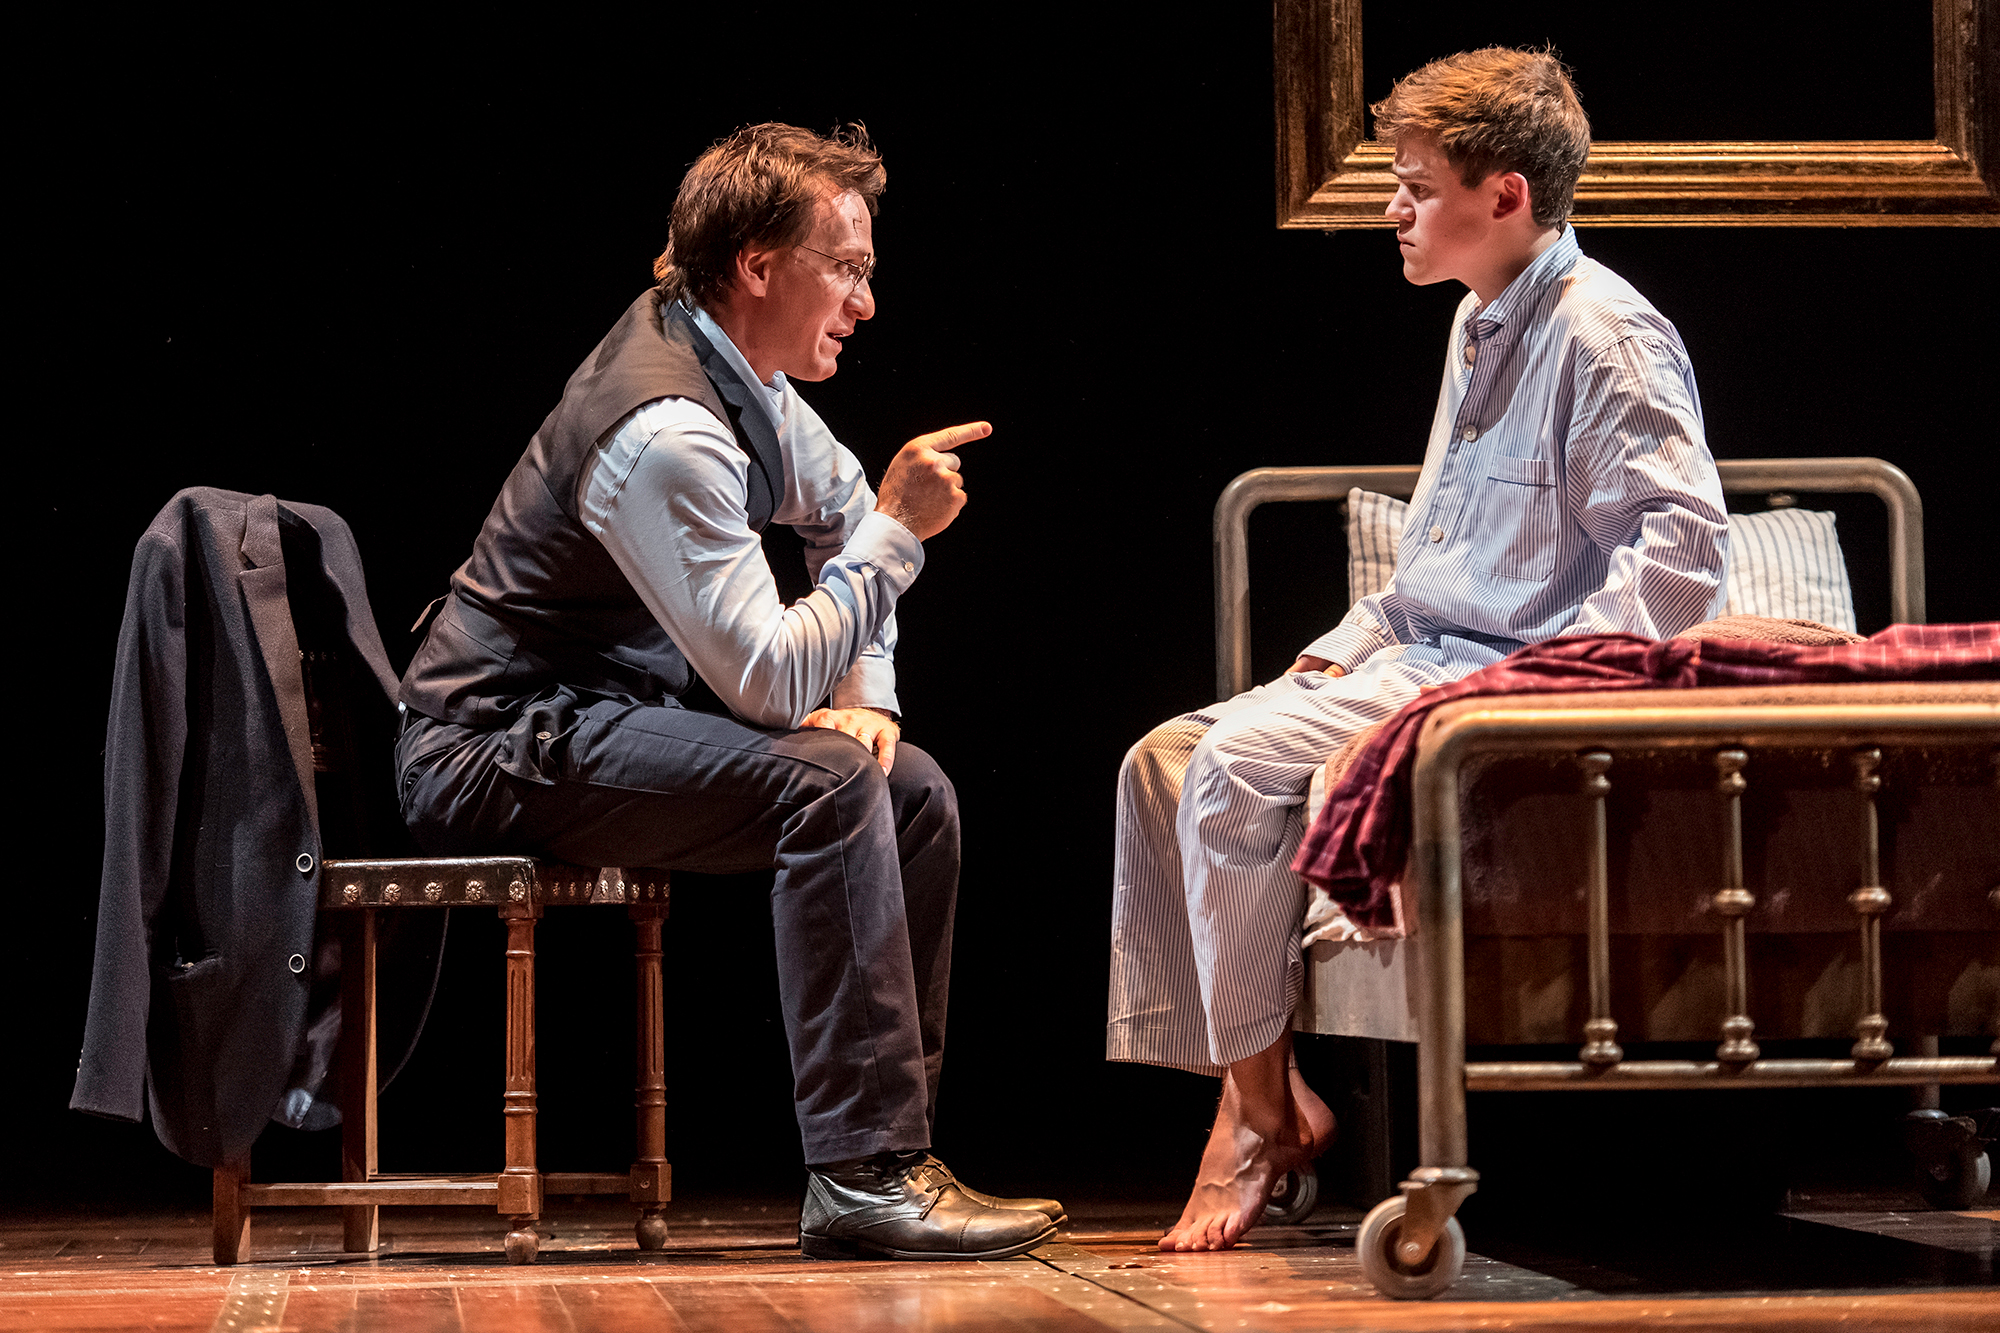 From left: Jamie Parker as Harry Potter and Sam Clemmett as Albus Potter in Harry Potter and the Cursed Child.